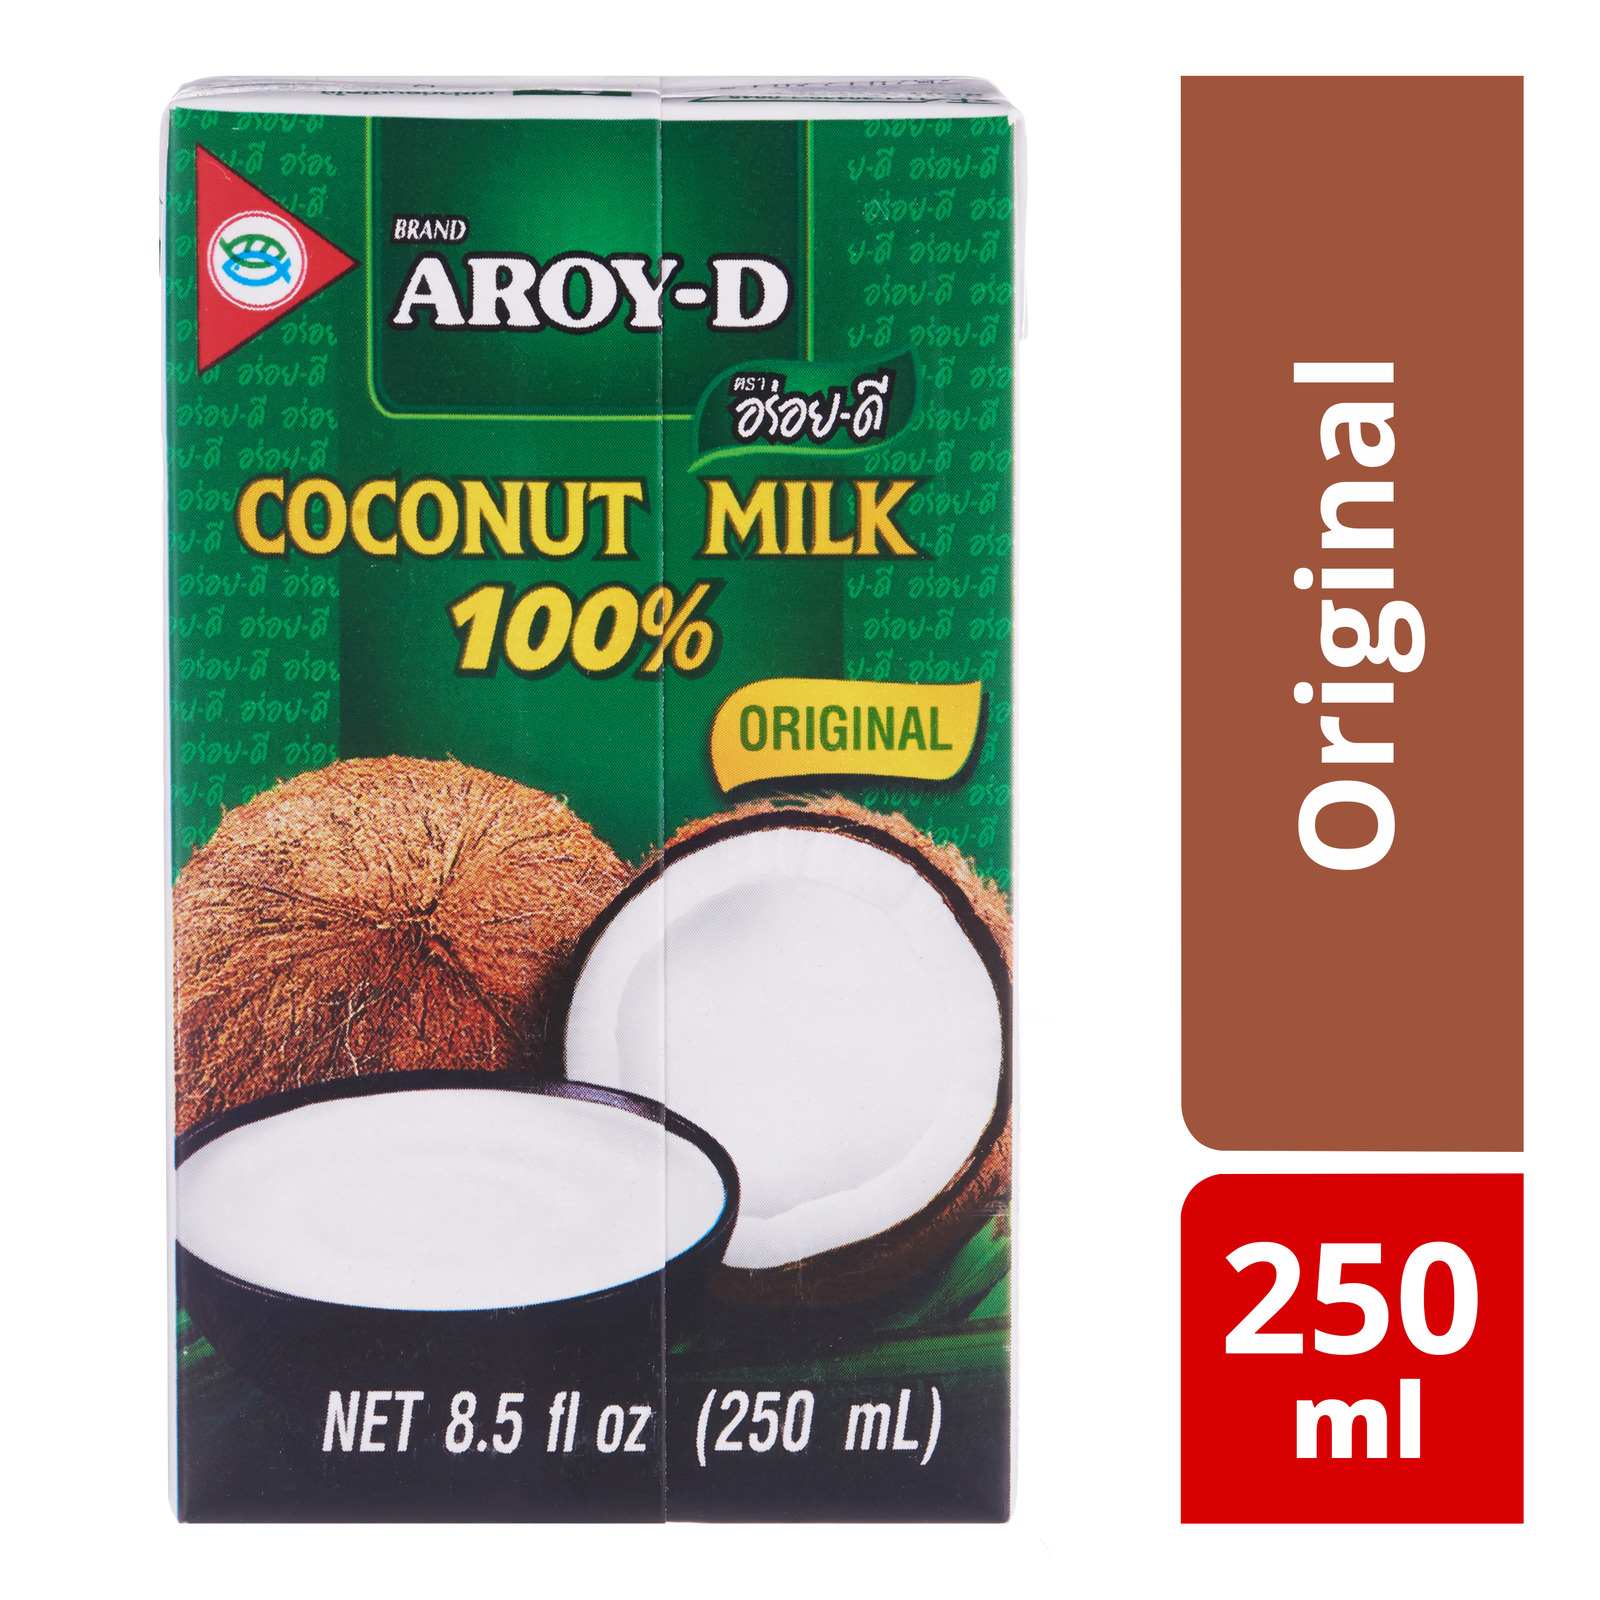 Aroy-D 100% Coconut Milk - Original